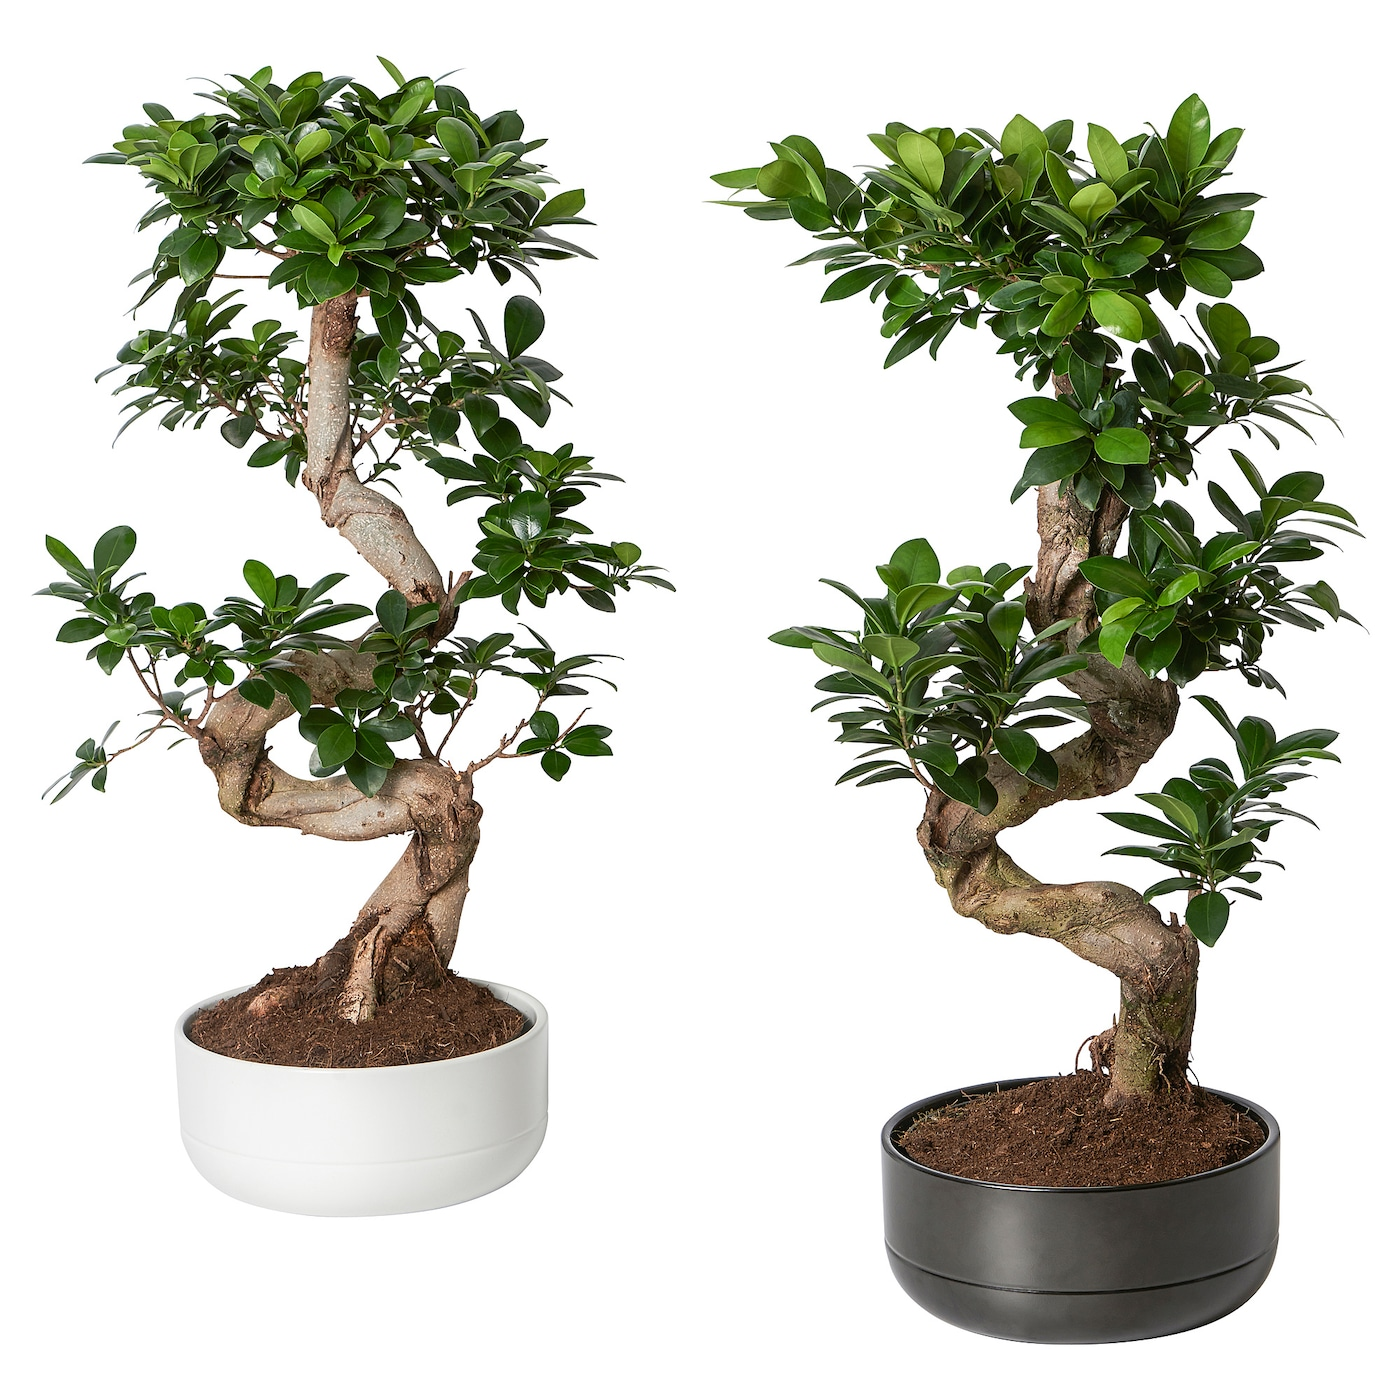 Ficus Microcarpa Ginseng Potted Plant With Pot Bonsai